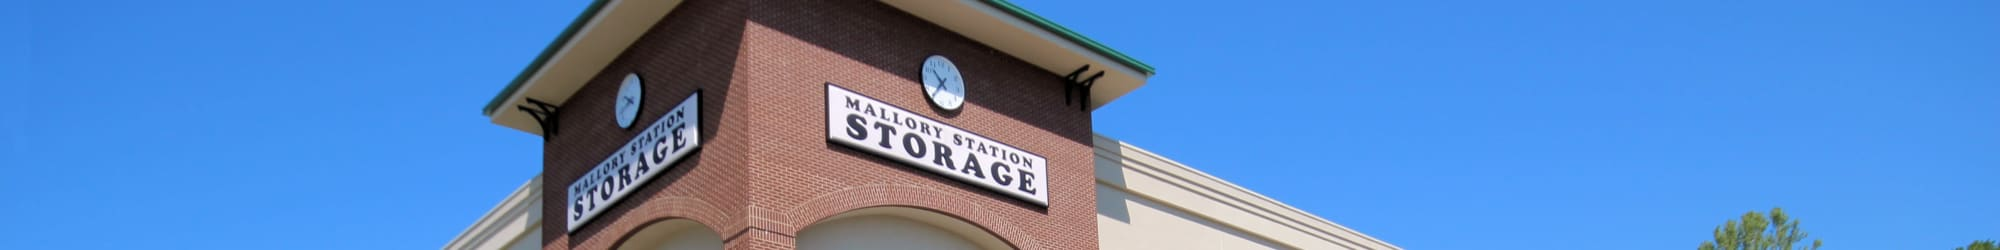 About Mallory Station Storage in Brentwood, Tennessee